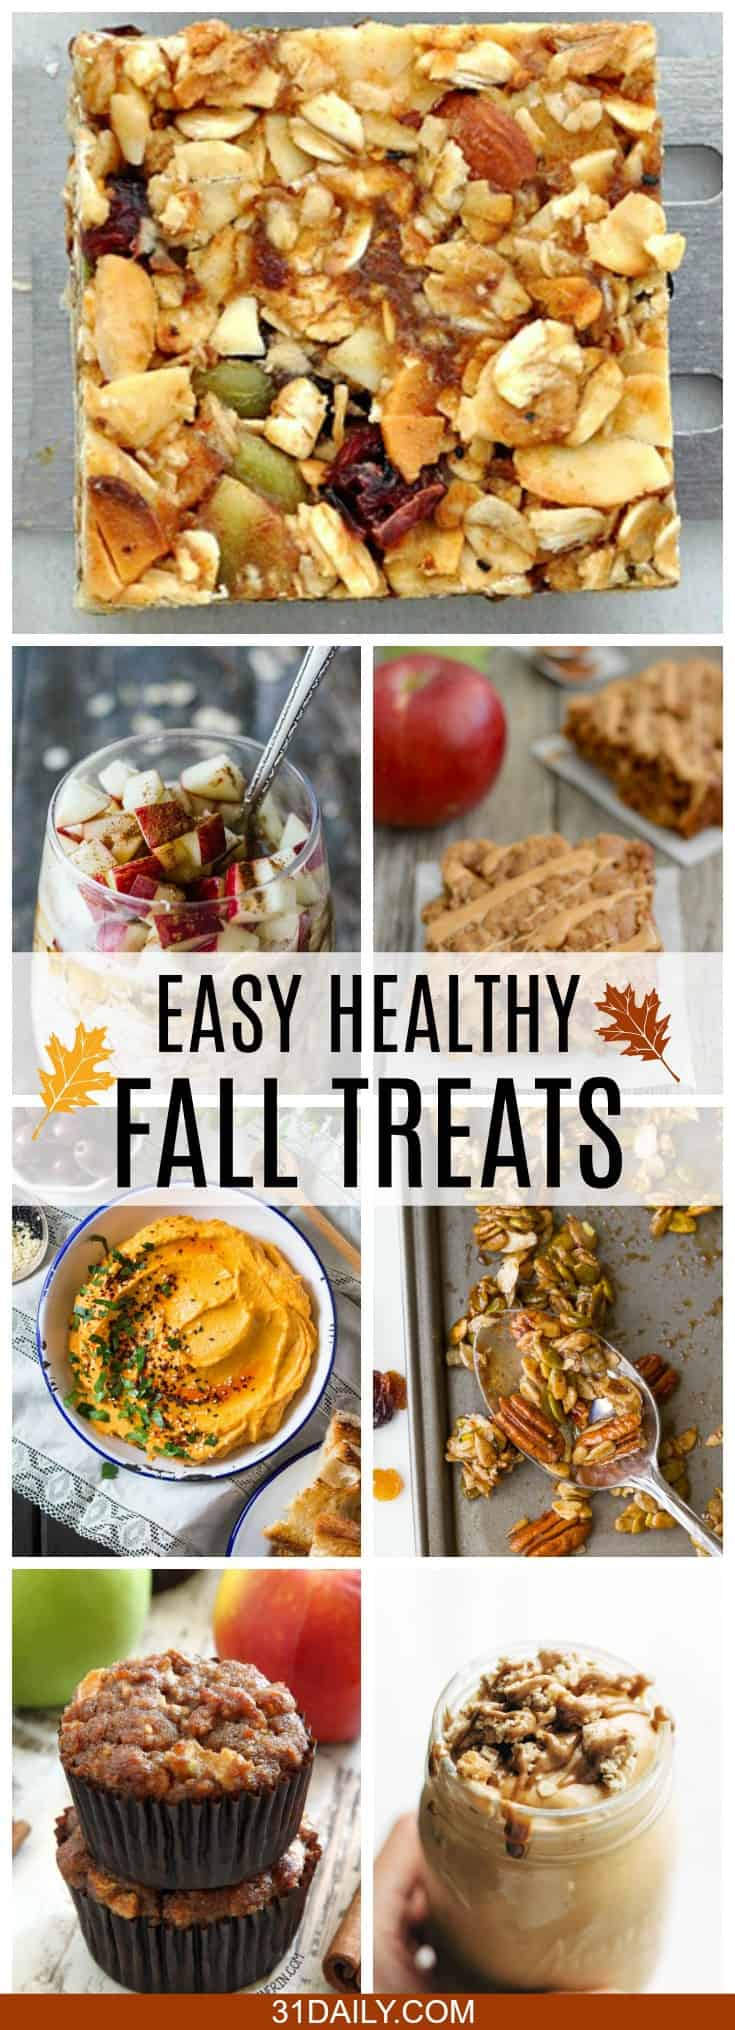 Easy and Healthy Fall Treats | 31Daily.com